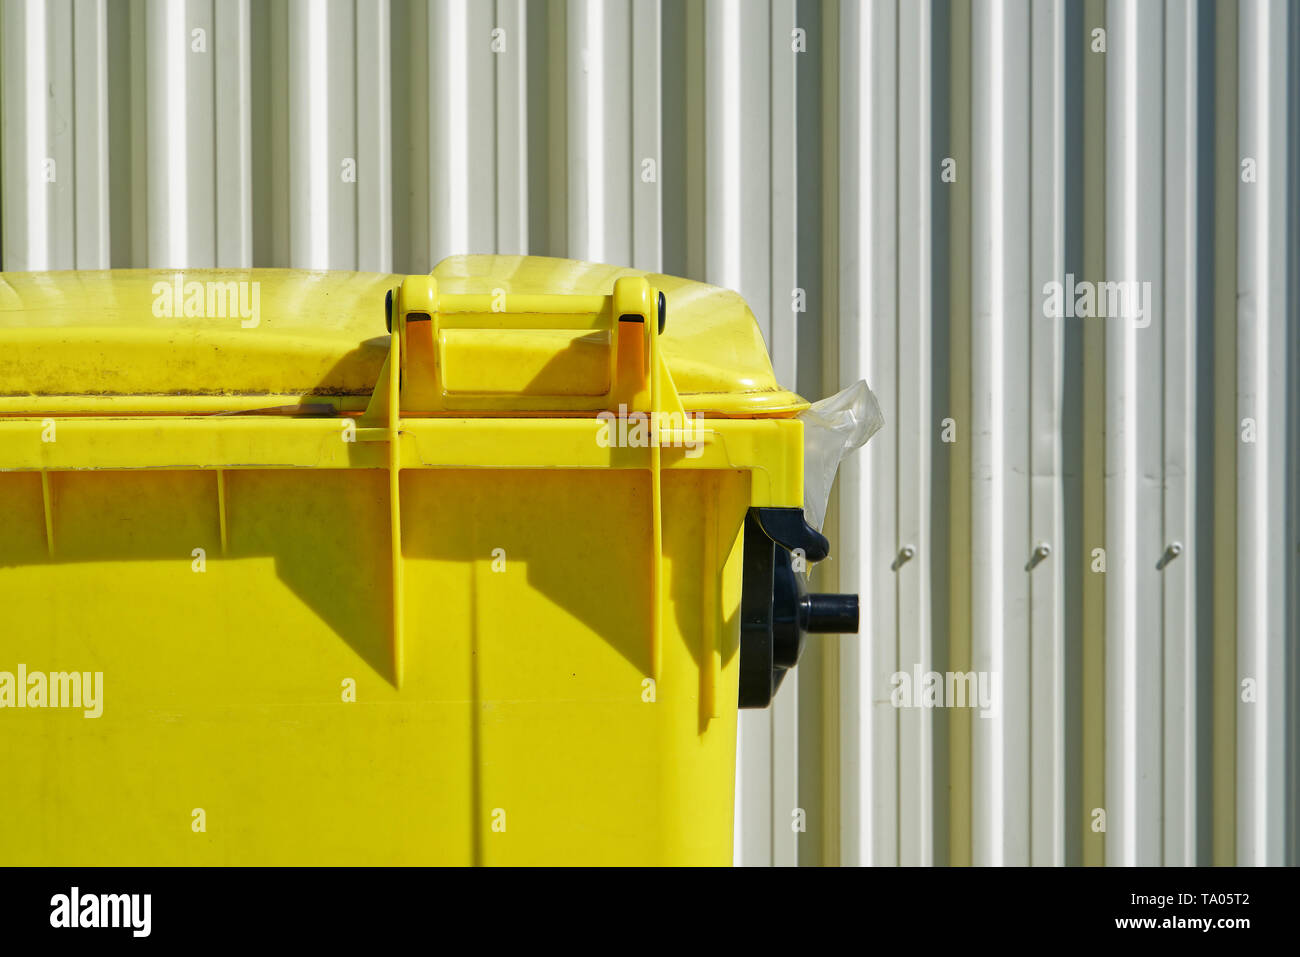 Bright yellow dumpster part view against a backdrop of a white industrial corrugated cladding or wall siding. - Stock Image